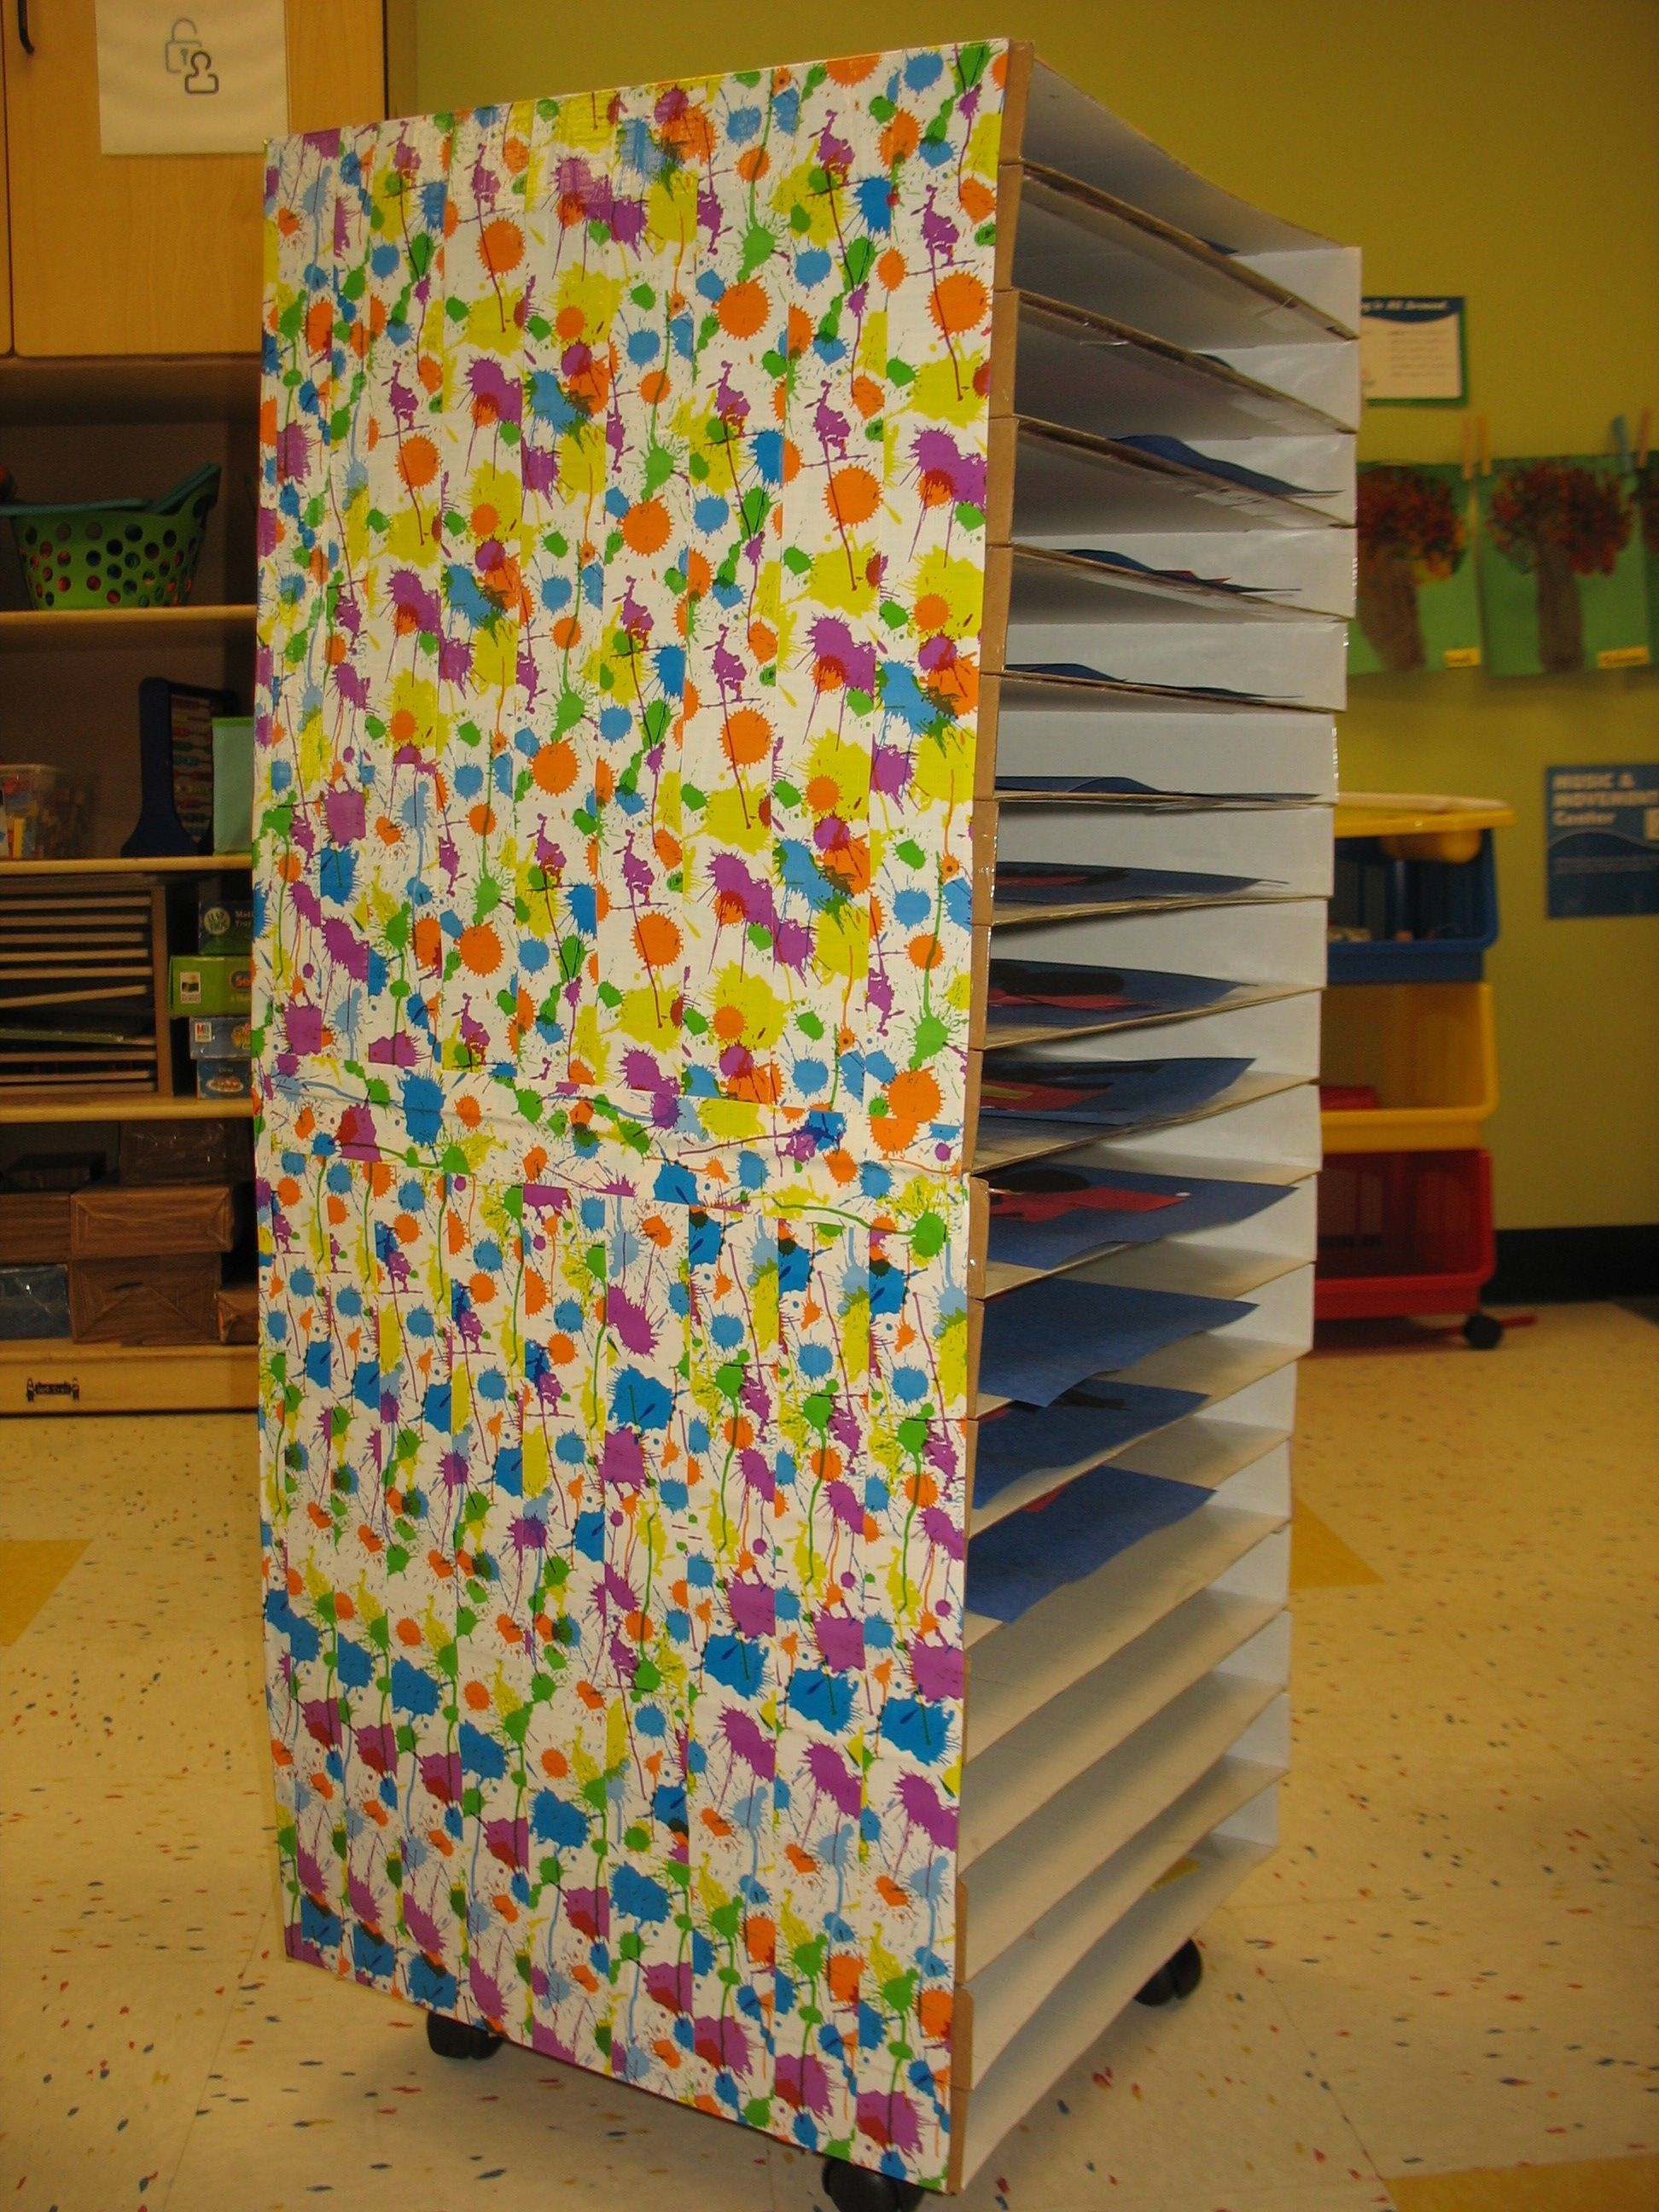 Drying Rack For Art Work Made From Pizza Boxes Projectgabi Art